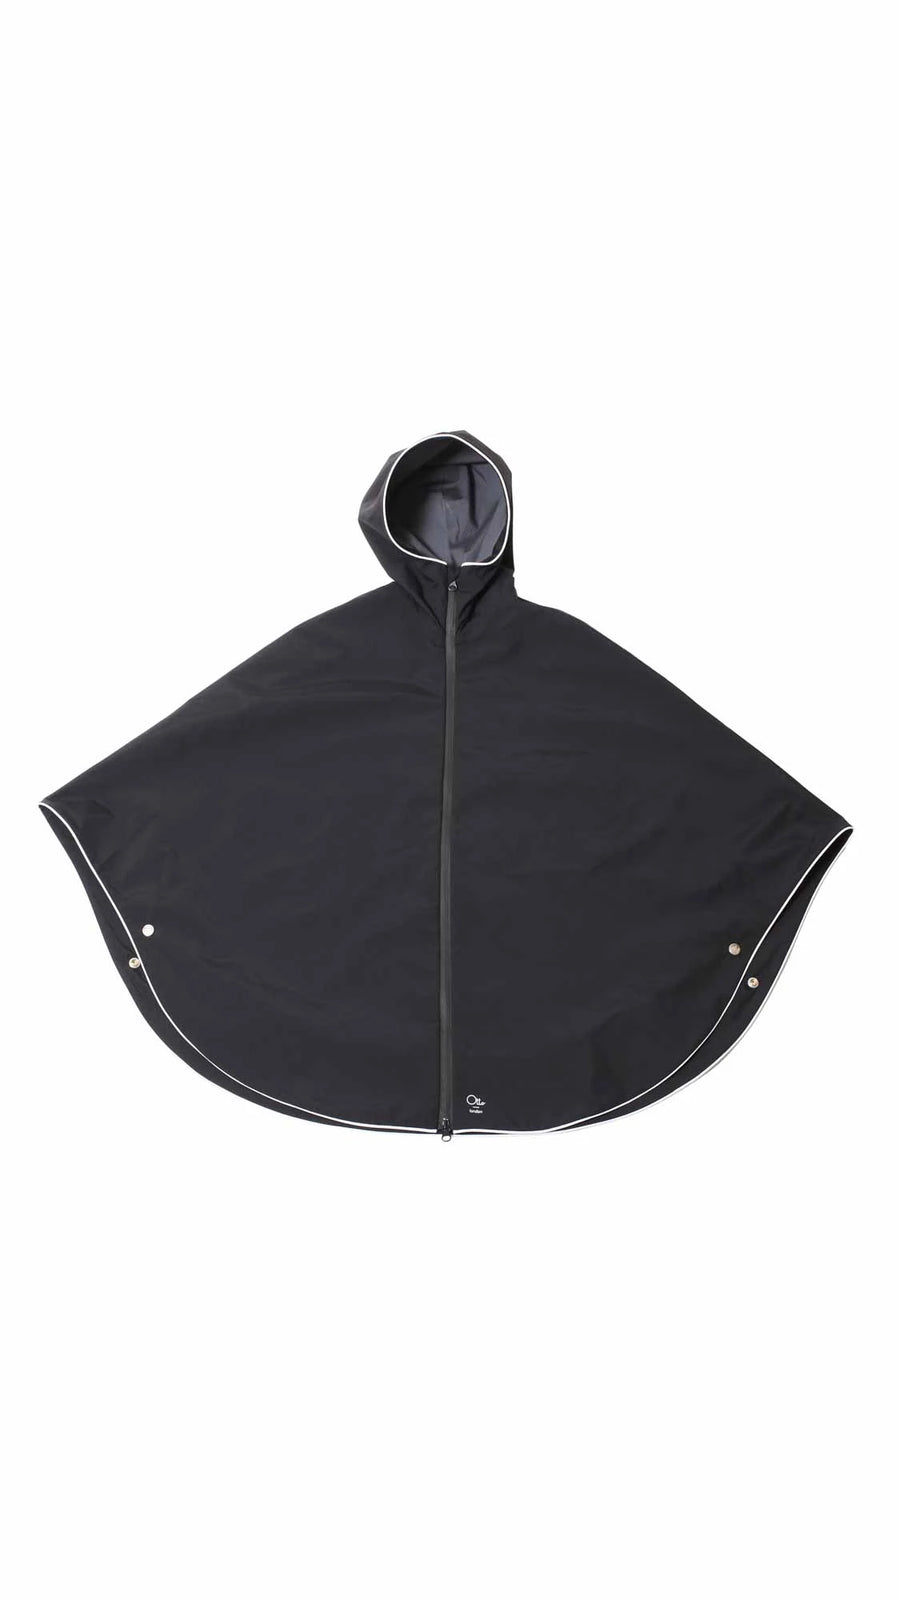 CYCLING RAIN CAPE - MATT BLACK PONCHO